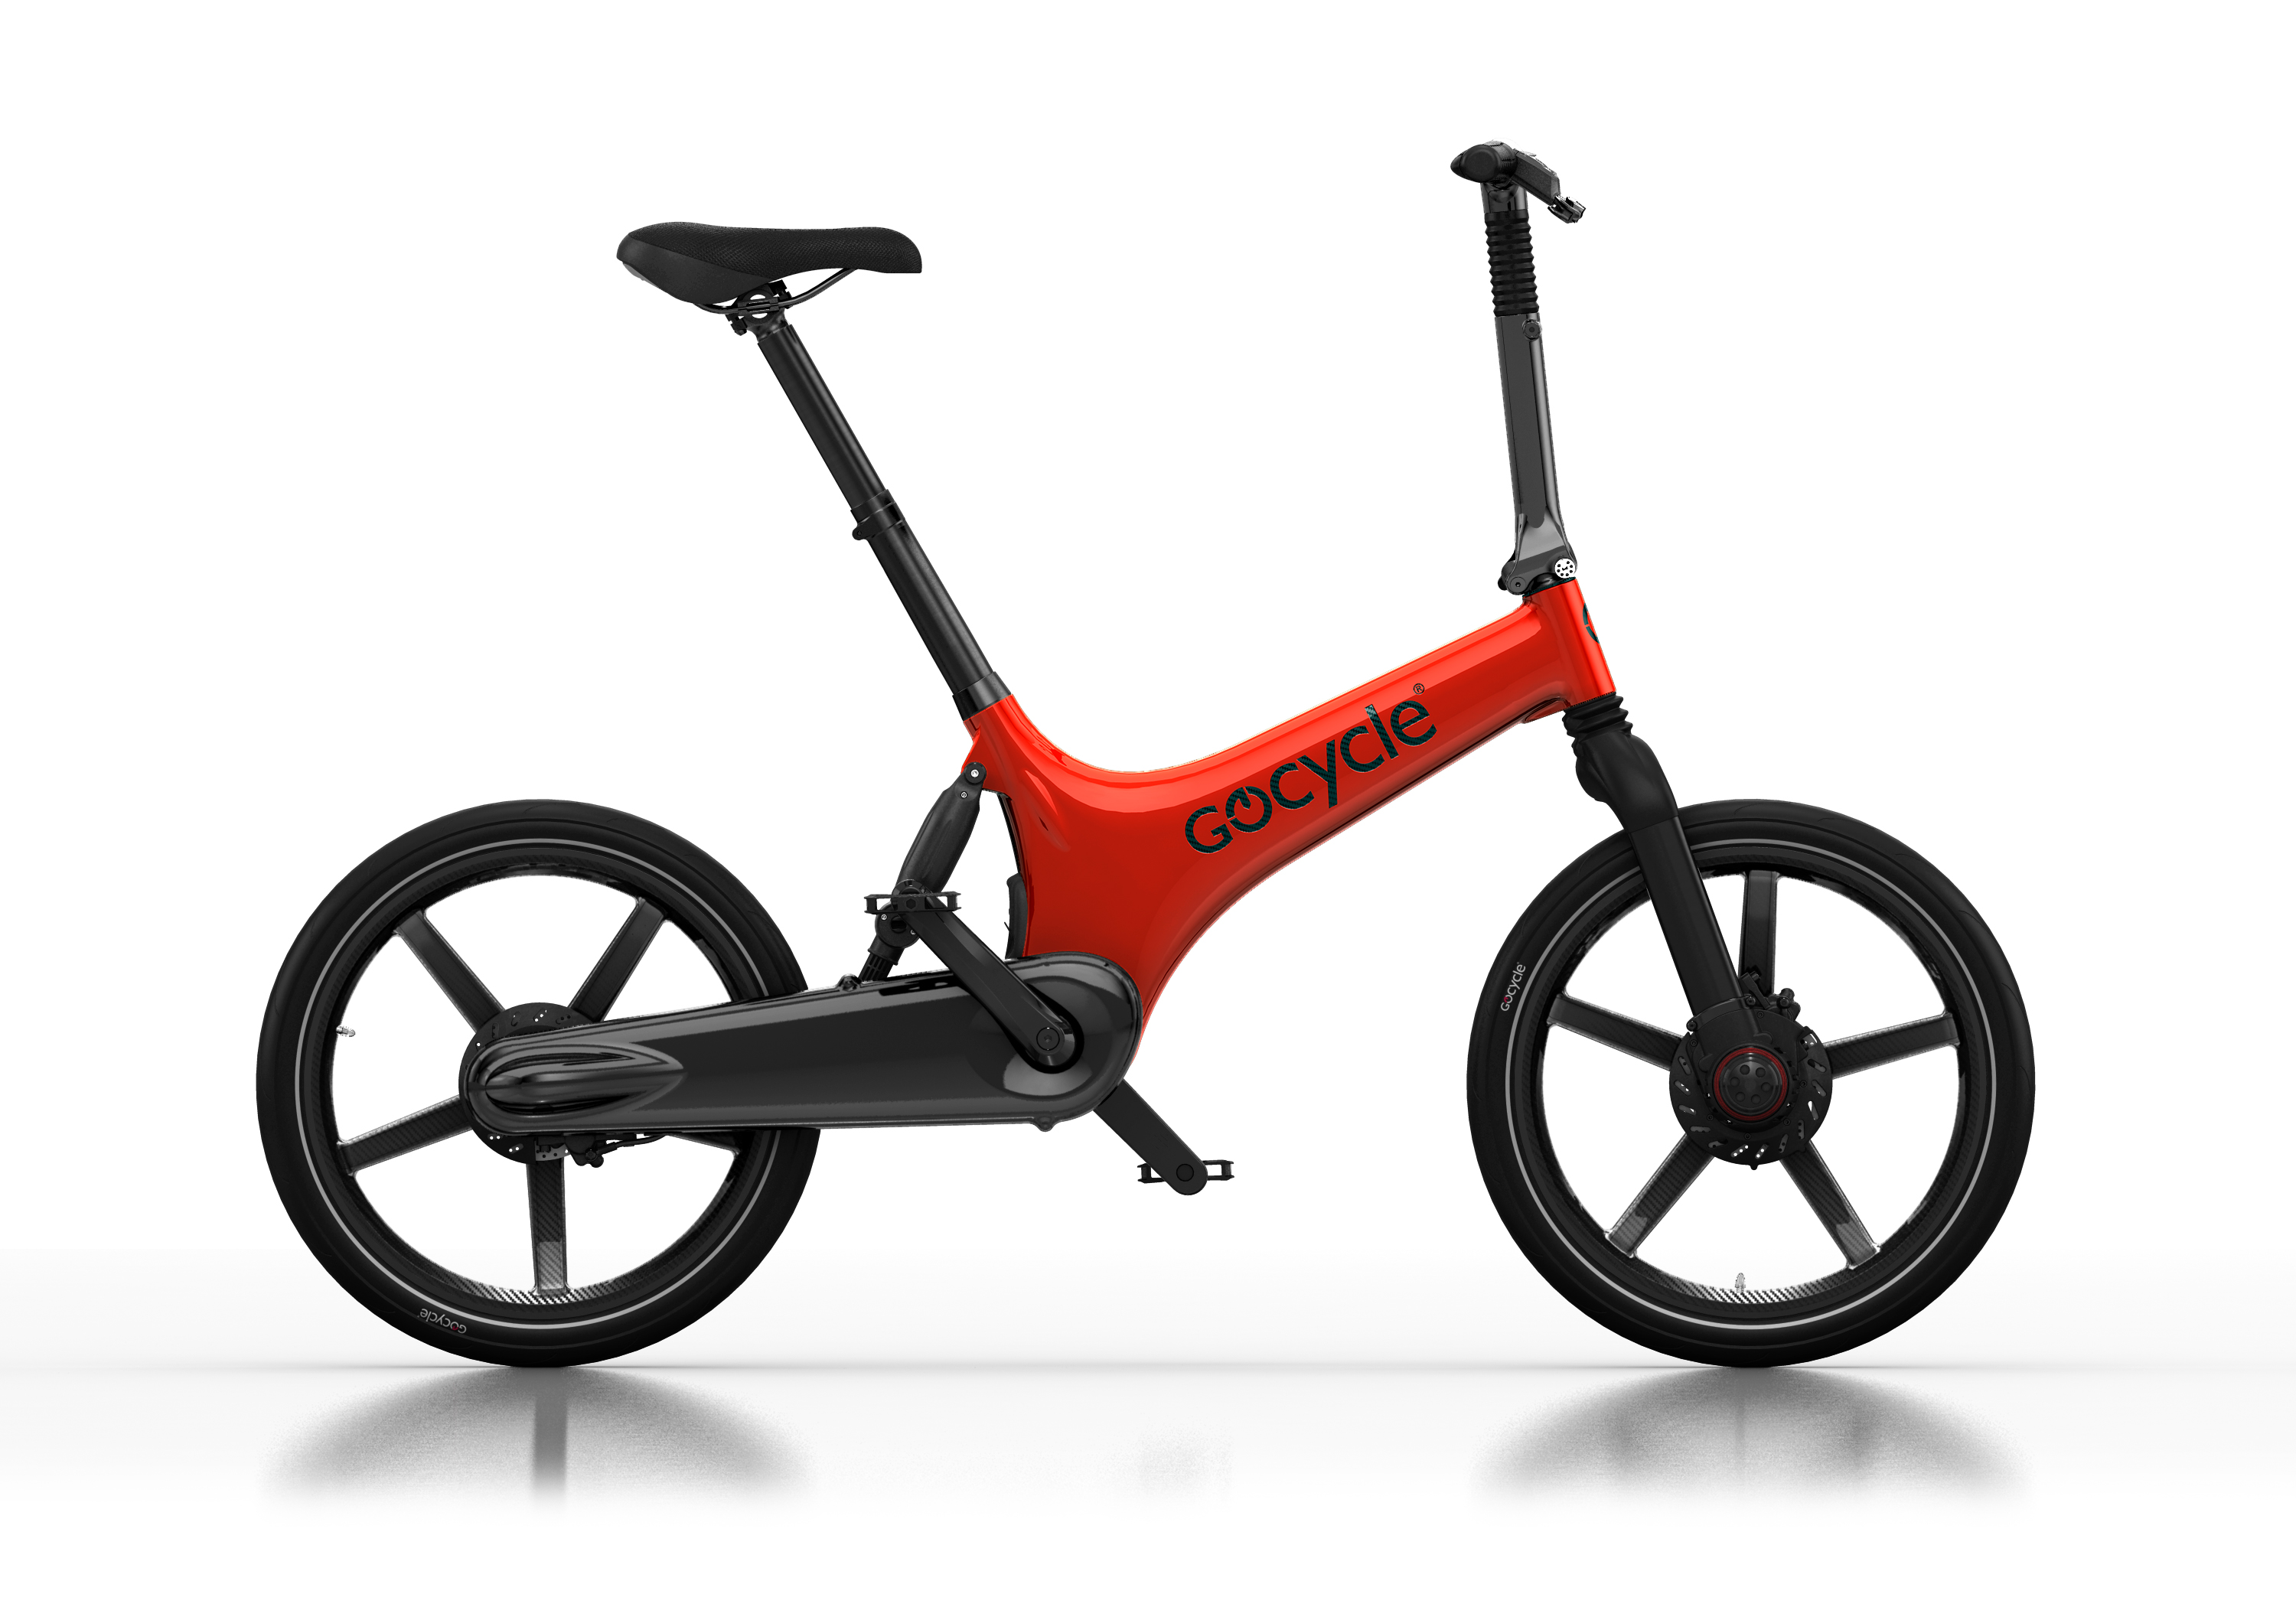 Gocycle G3C rdeč